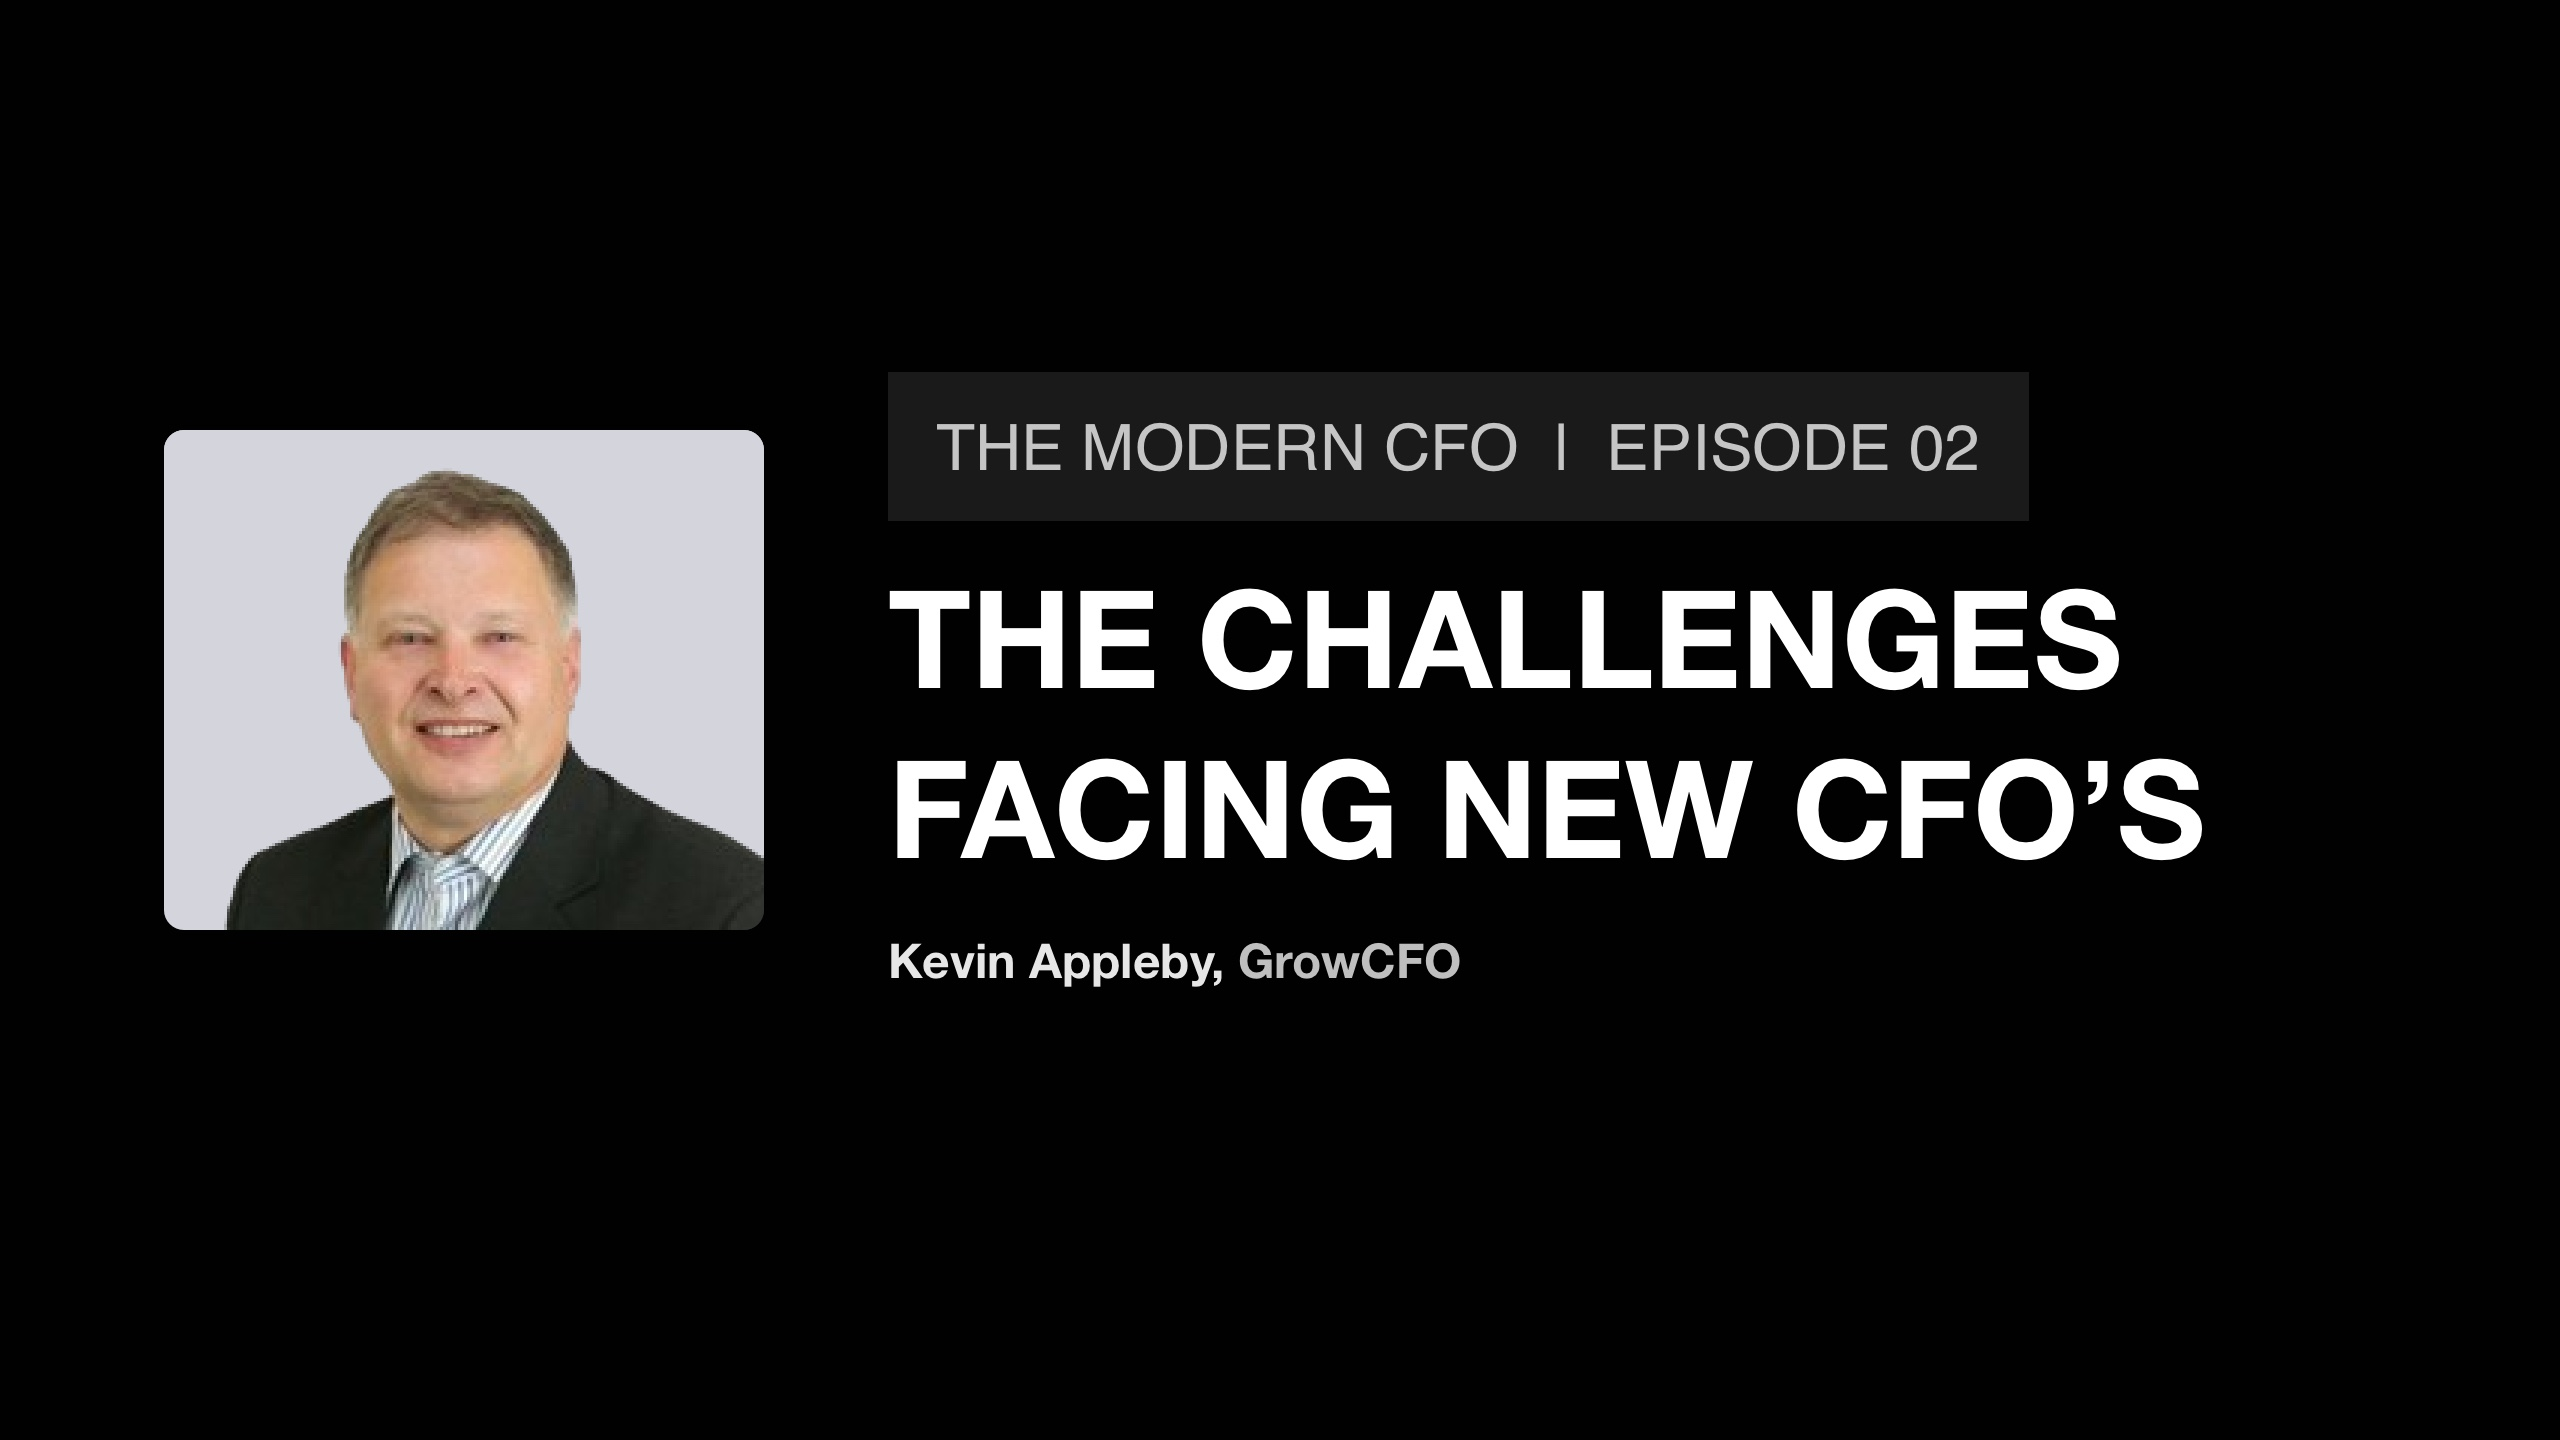 Kevin Appleby on the challenges facing new CFOs